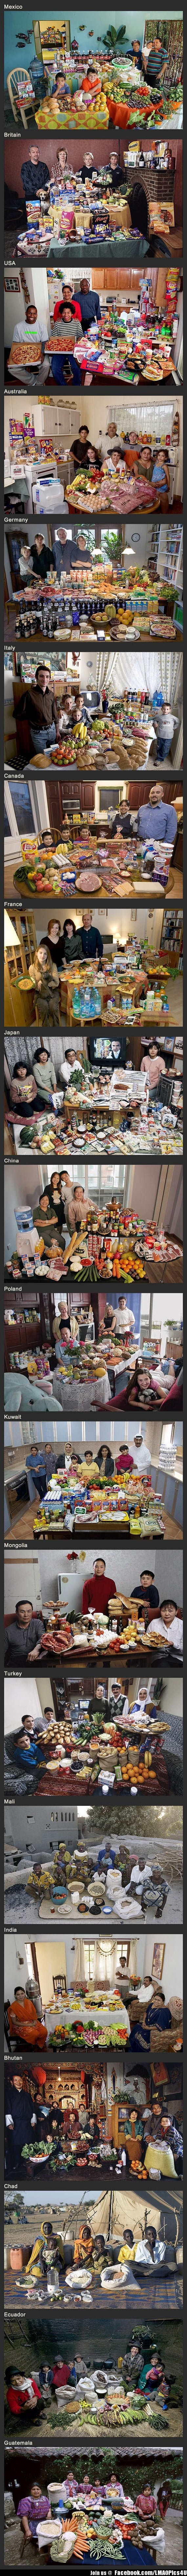 A week worth of groceries around the world